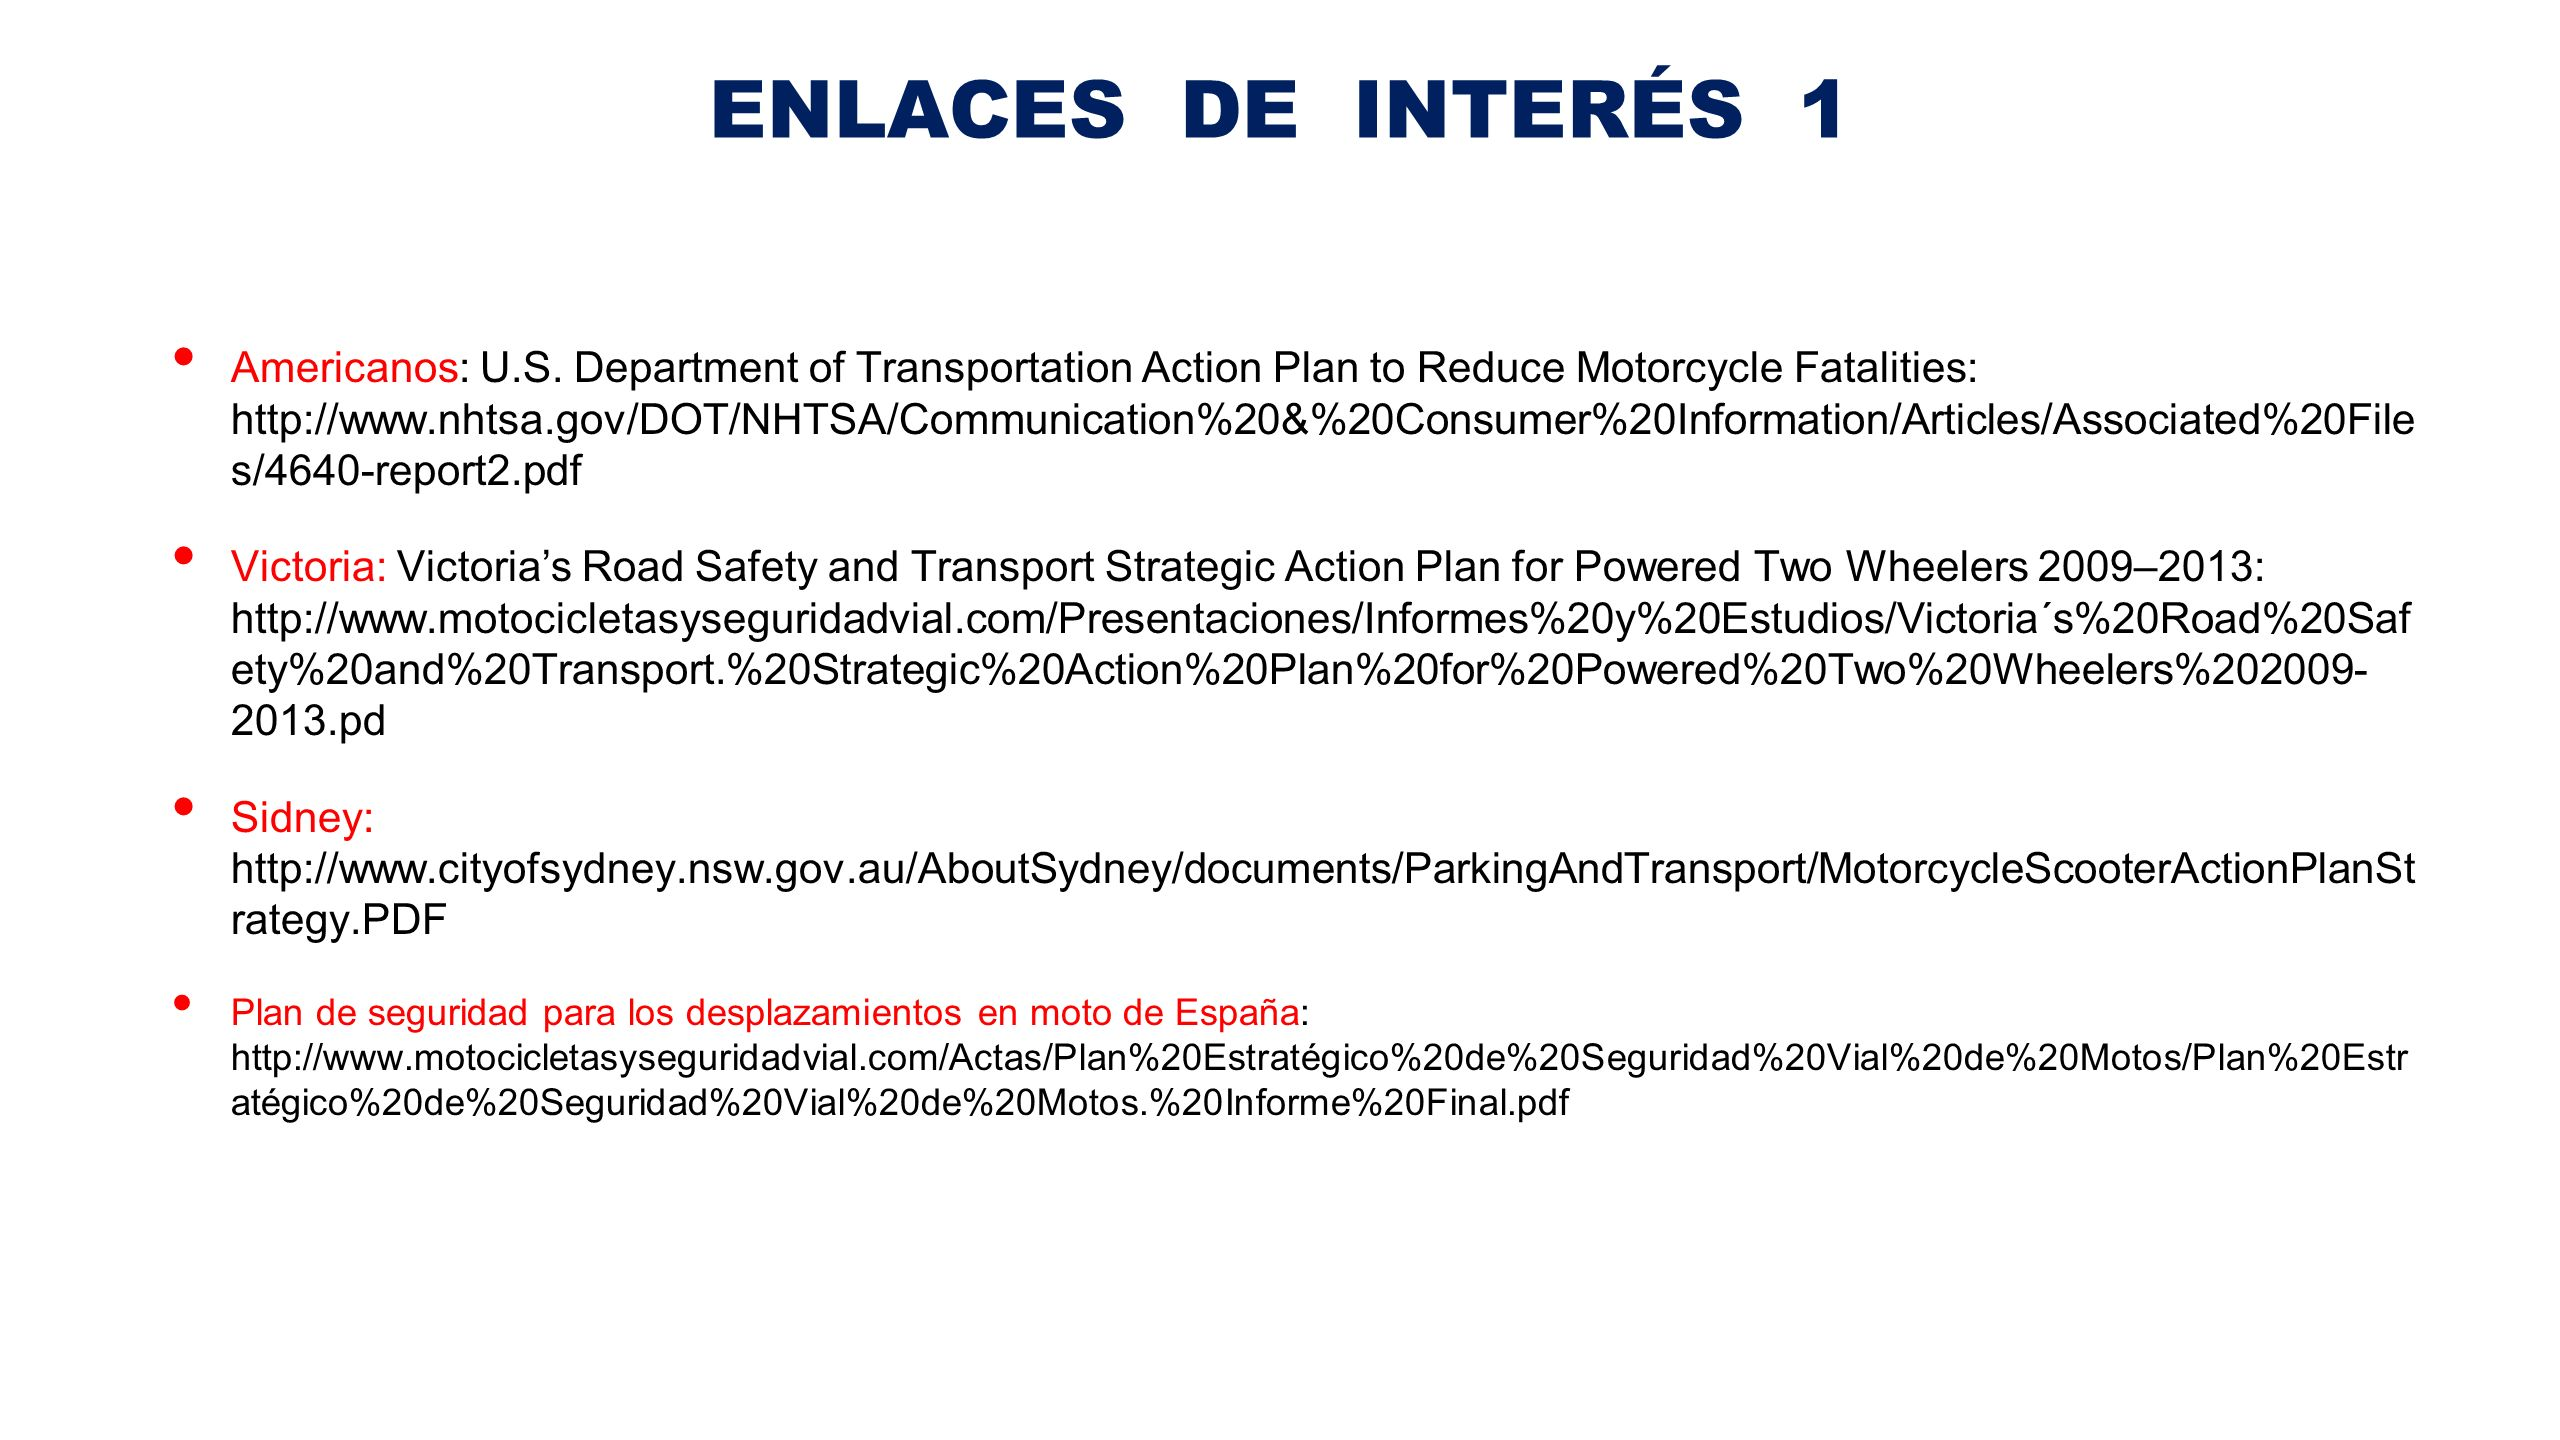 ENLACES DE INTERÉS 1 Americanos: U.S. Department of Transportation Action Plan to Reduce Motorcycle Fatalities: http://www.nhtsa.gov/DOT/NHTSA/Communi